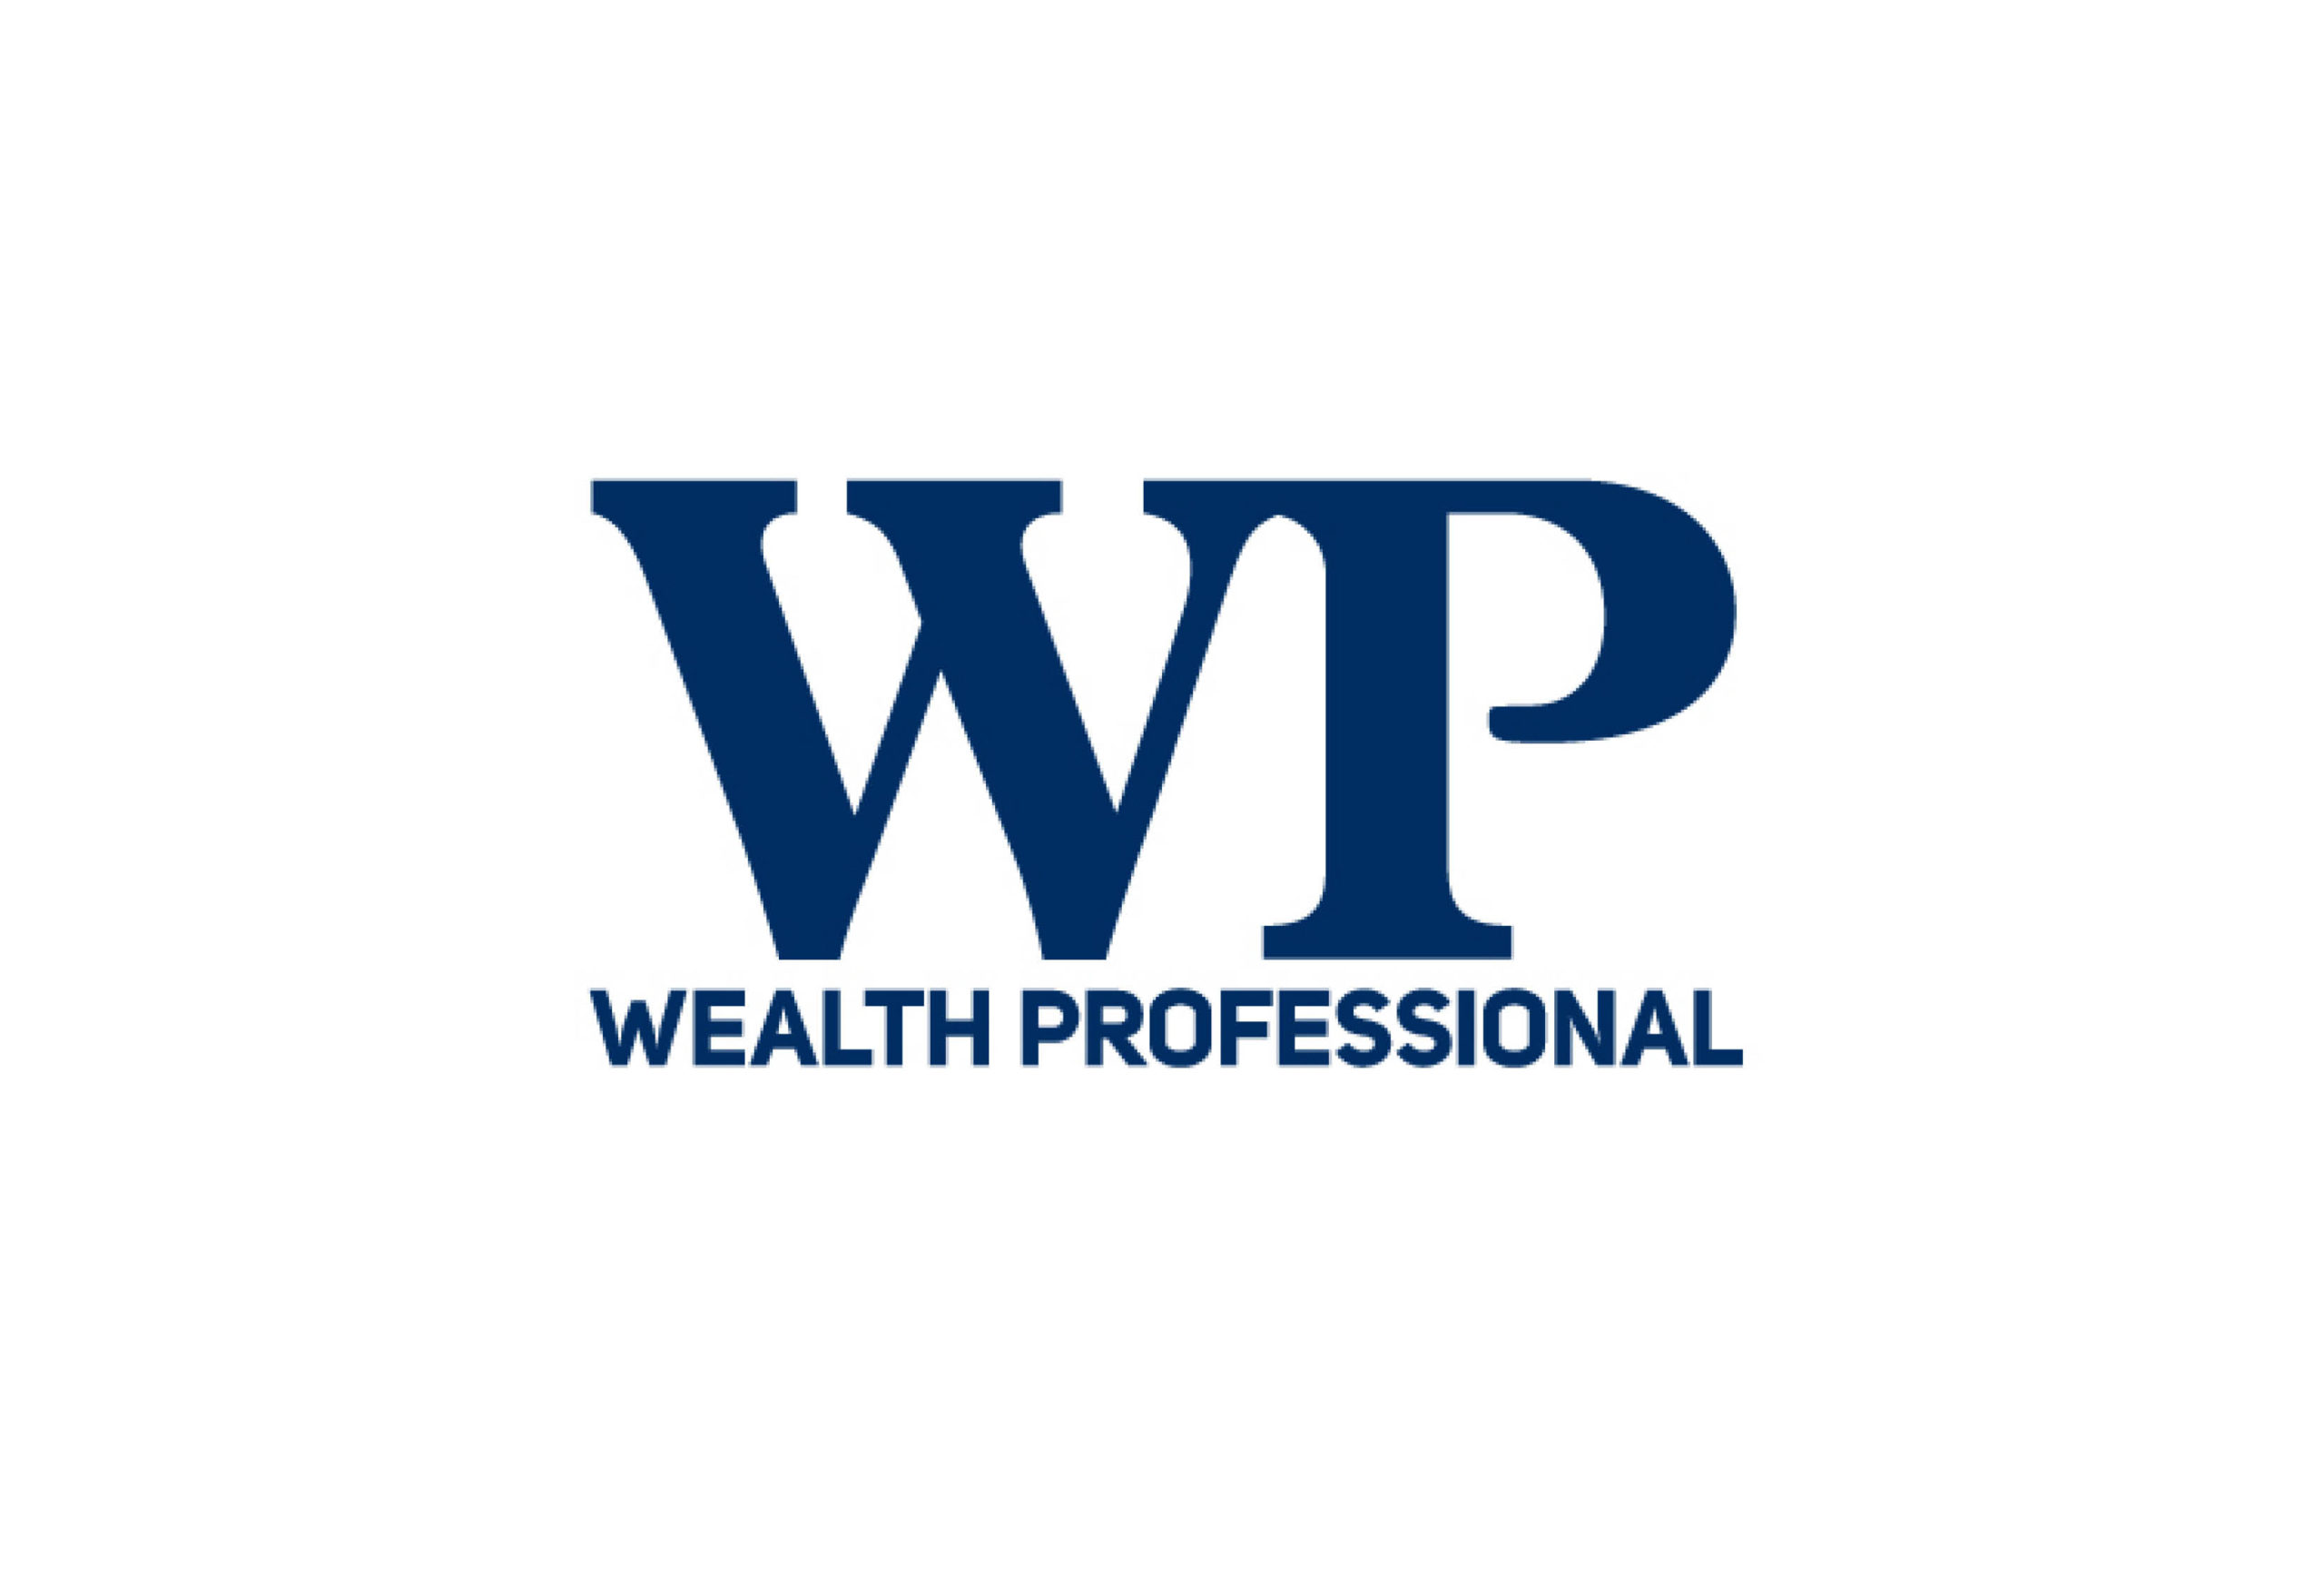 Wealth Professional: Creating Easy Diversification Into Alternative Assets